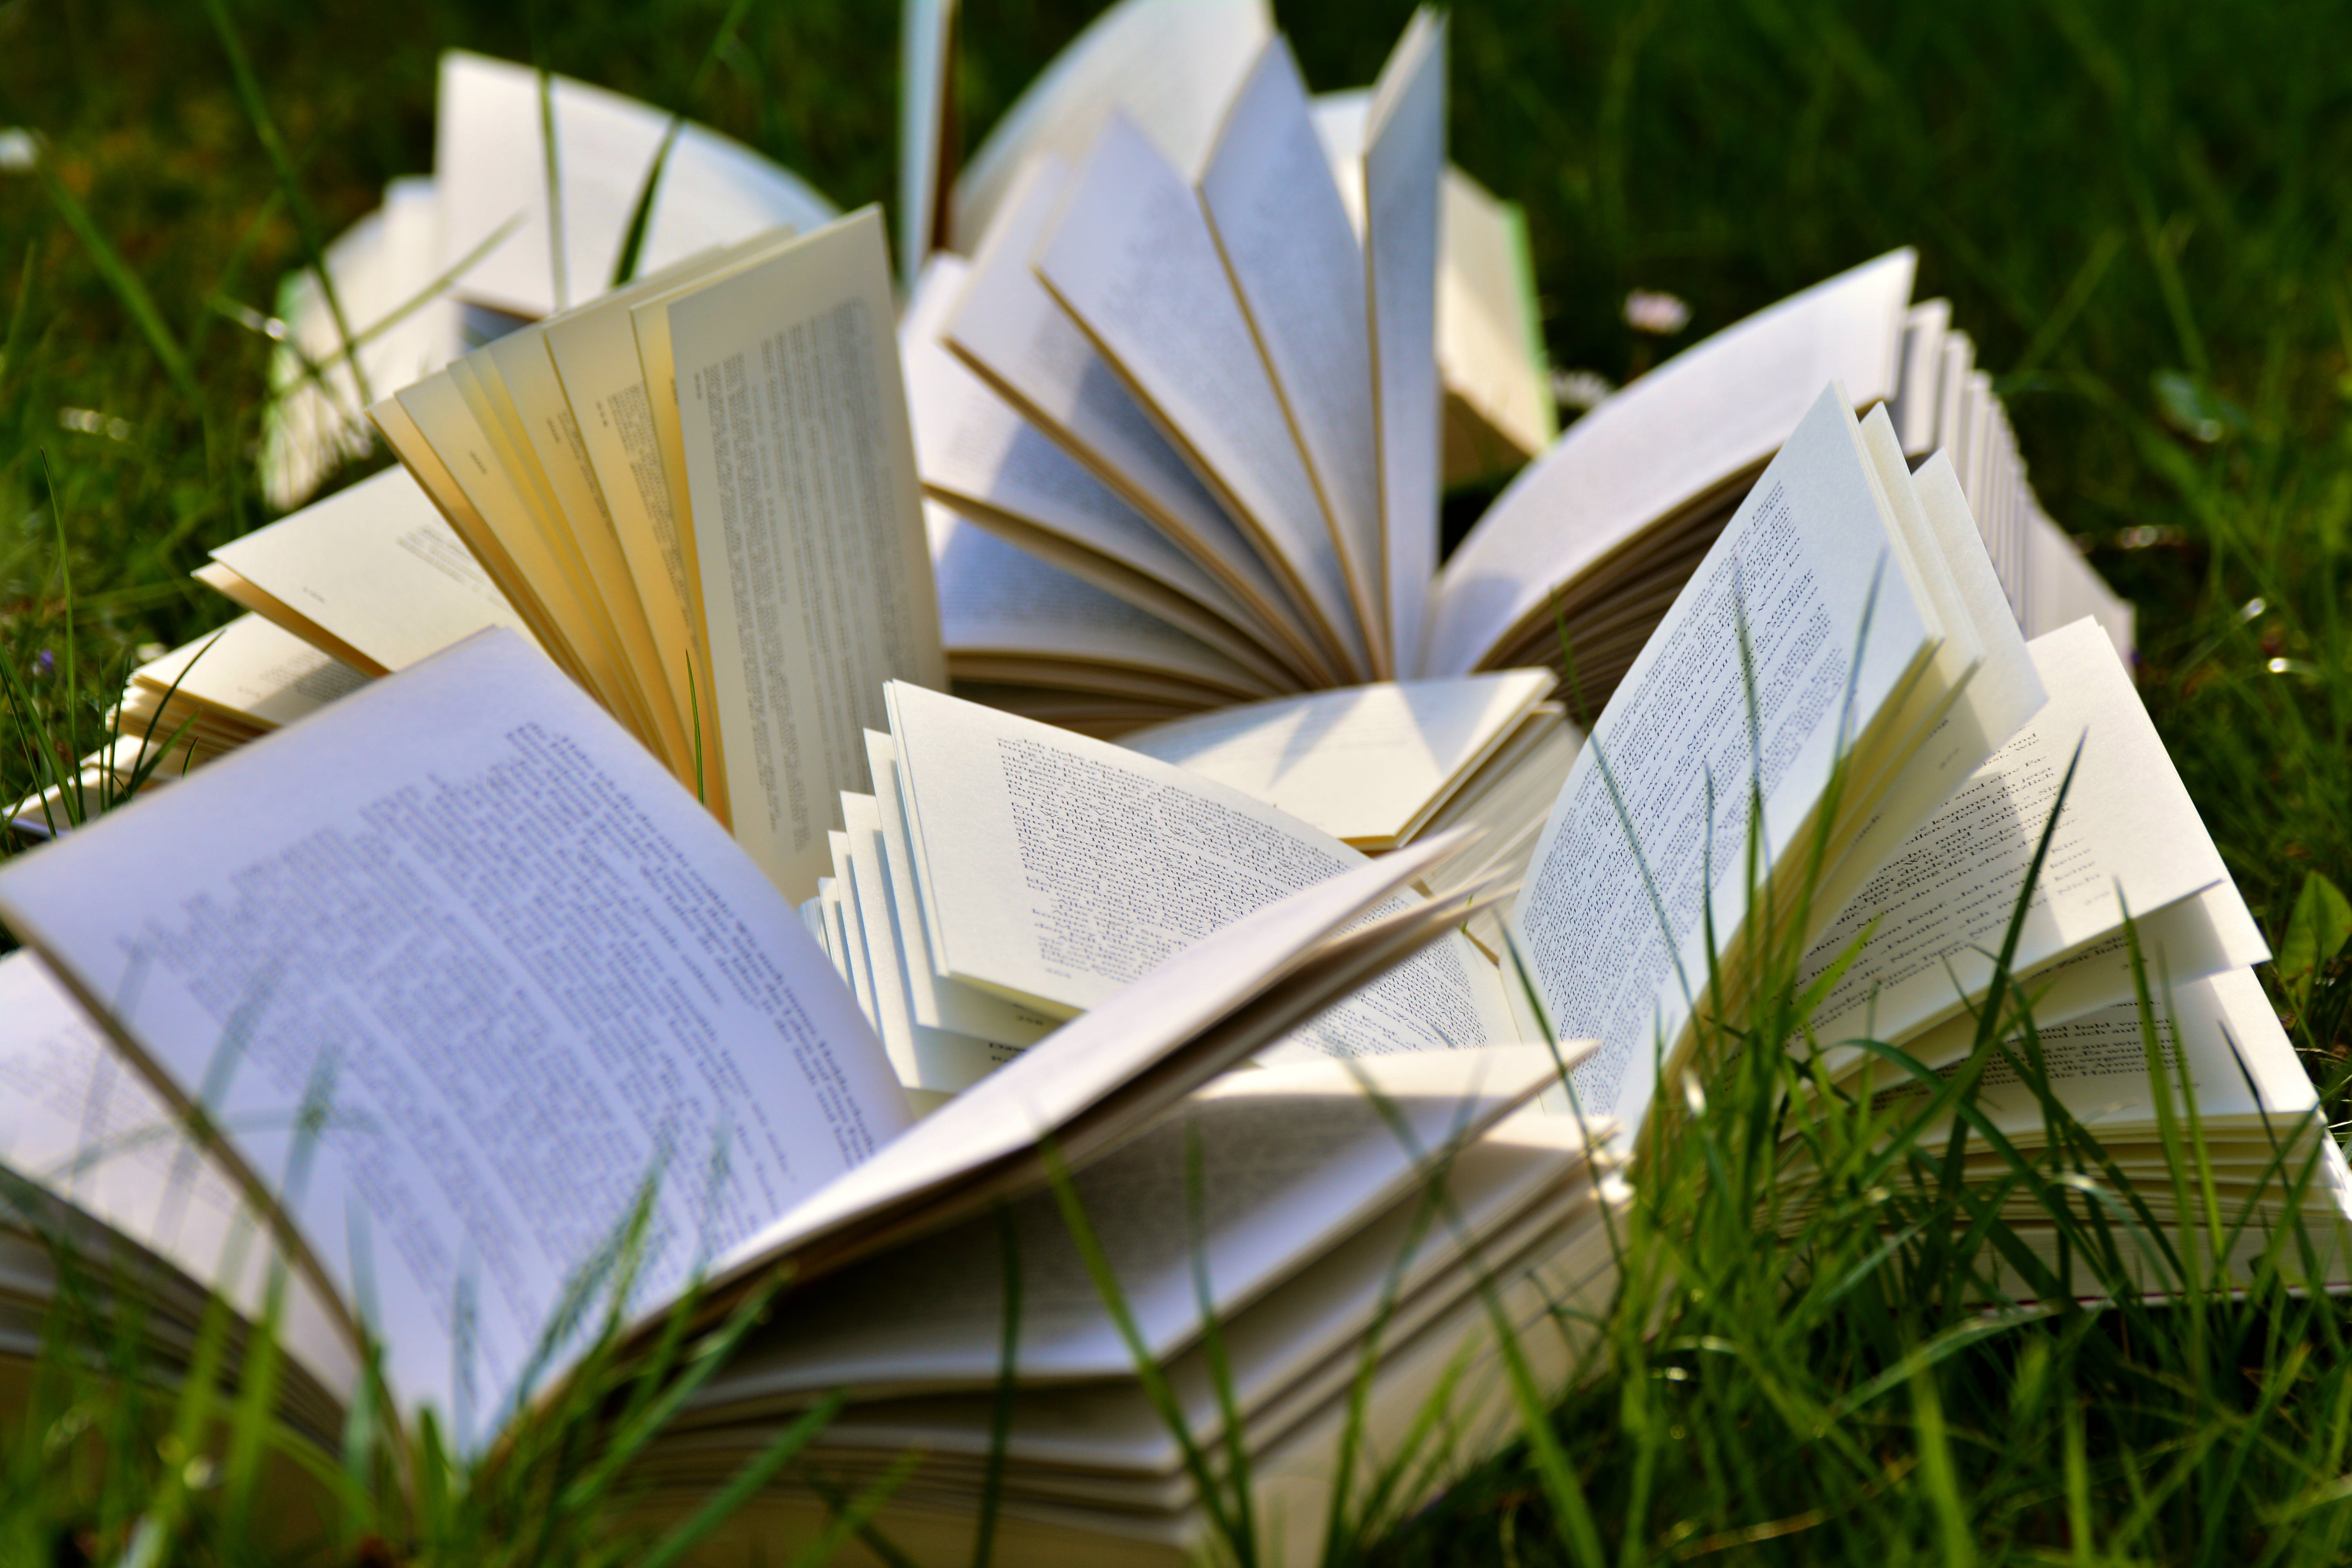 Open Books on Grass Field